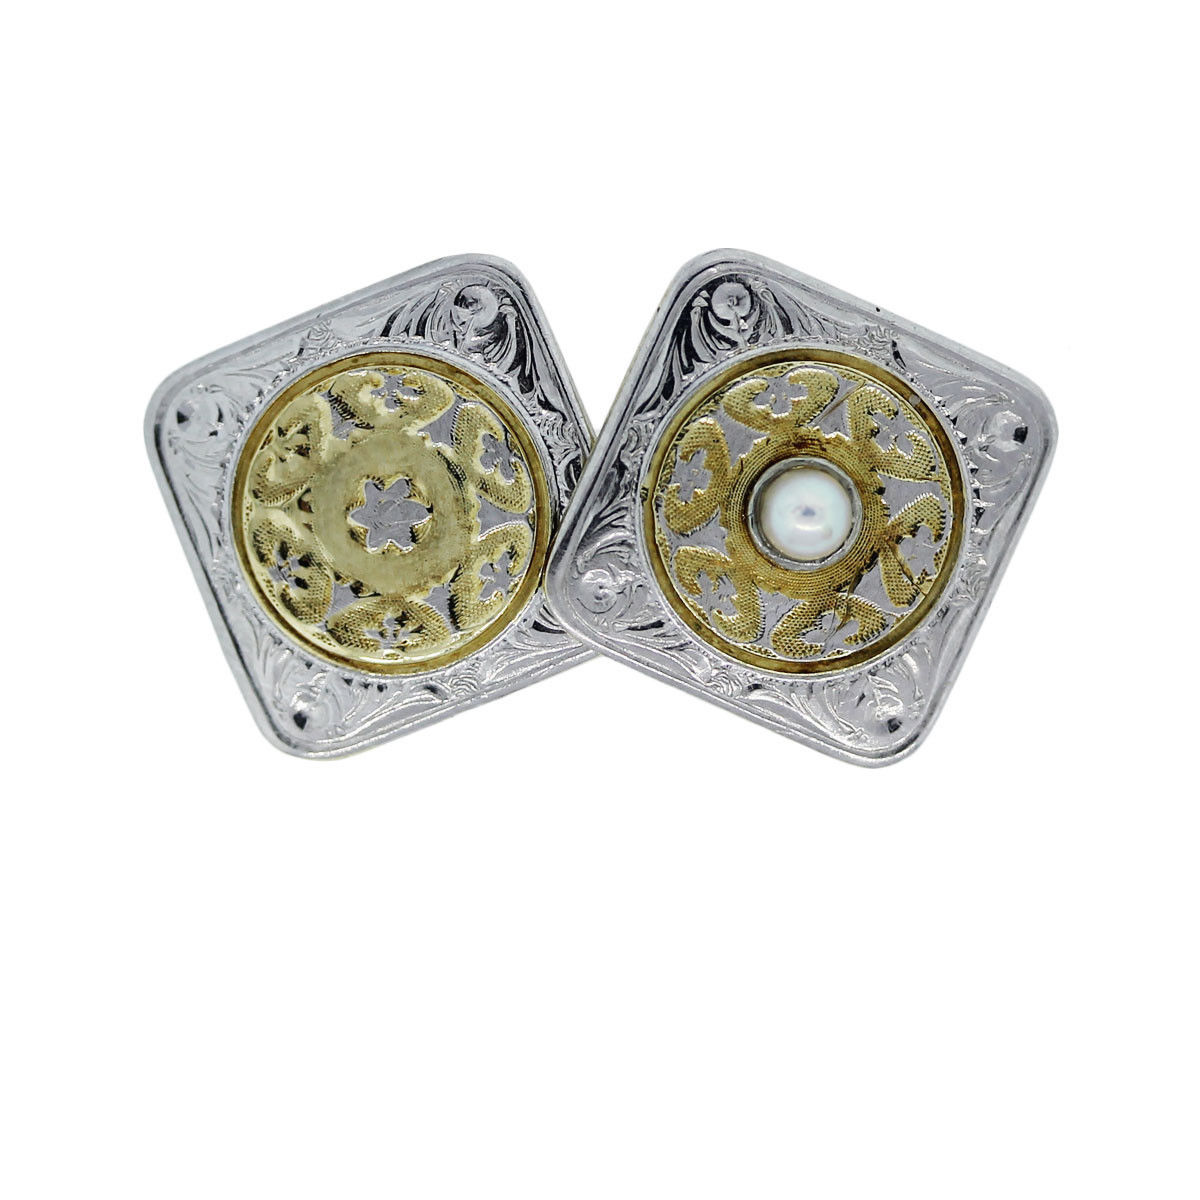 14k Two Tone and Pearl Cufflinks